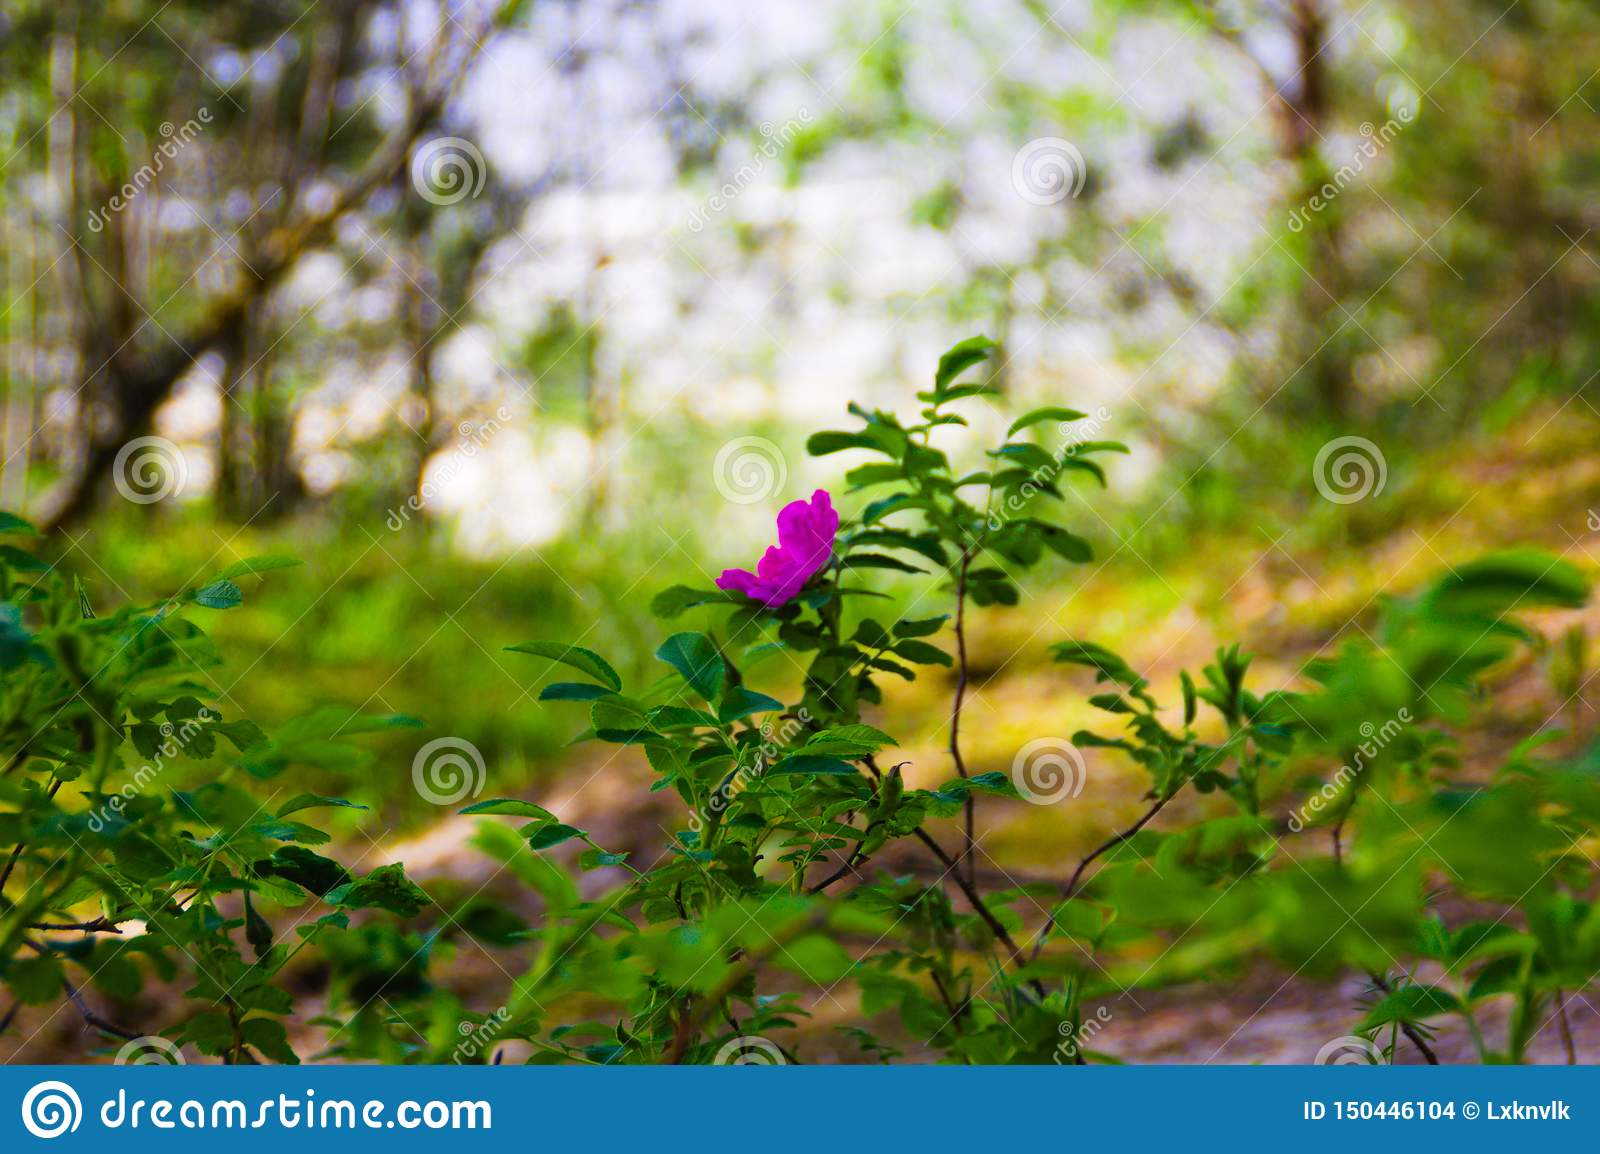 A pink flower on green blurred background